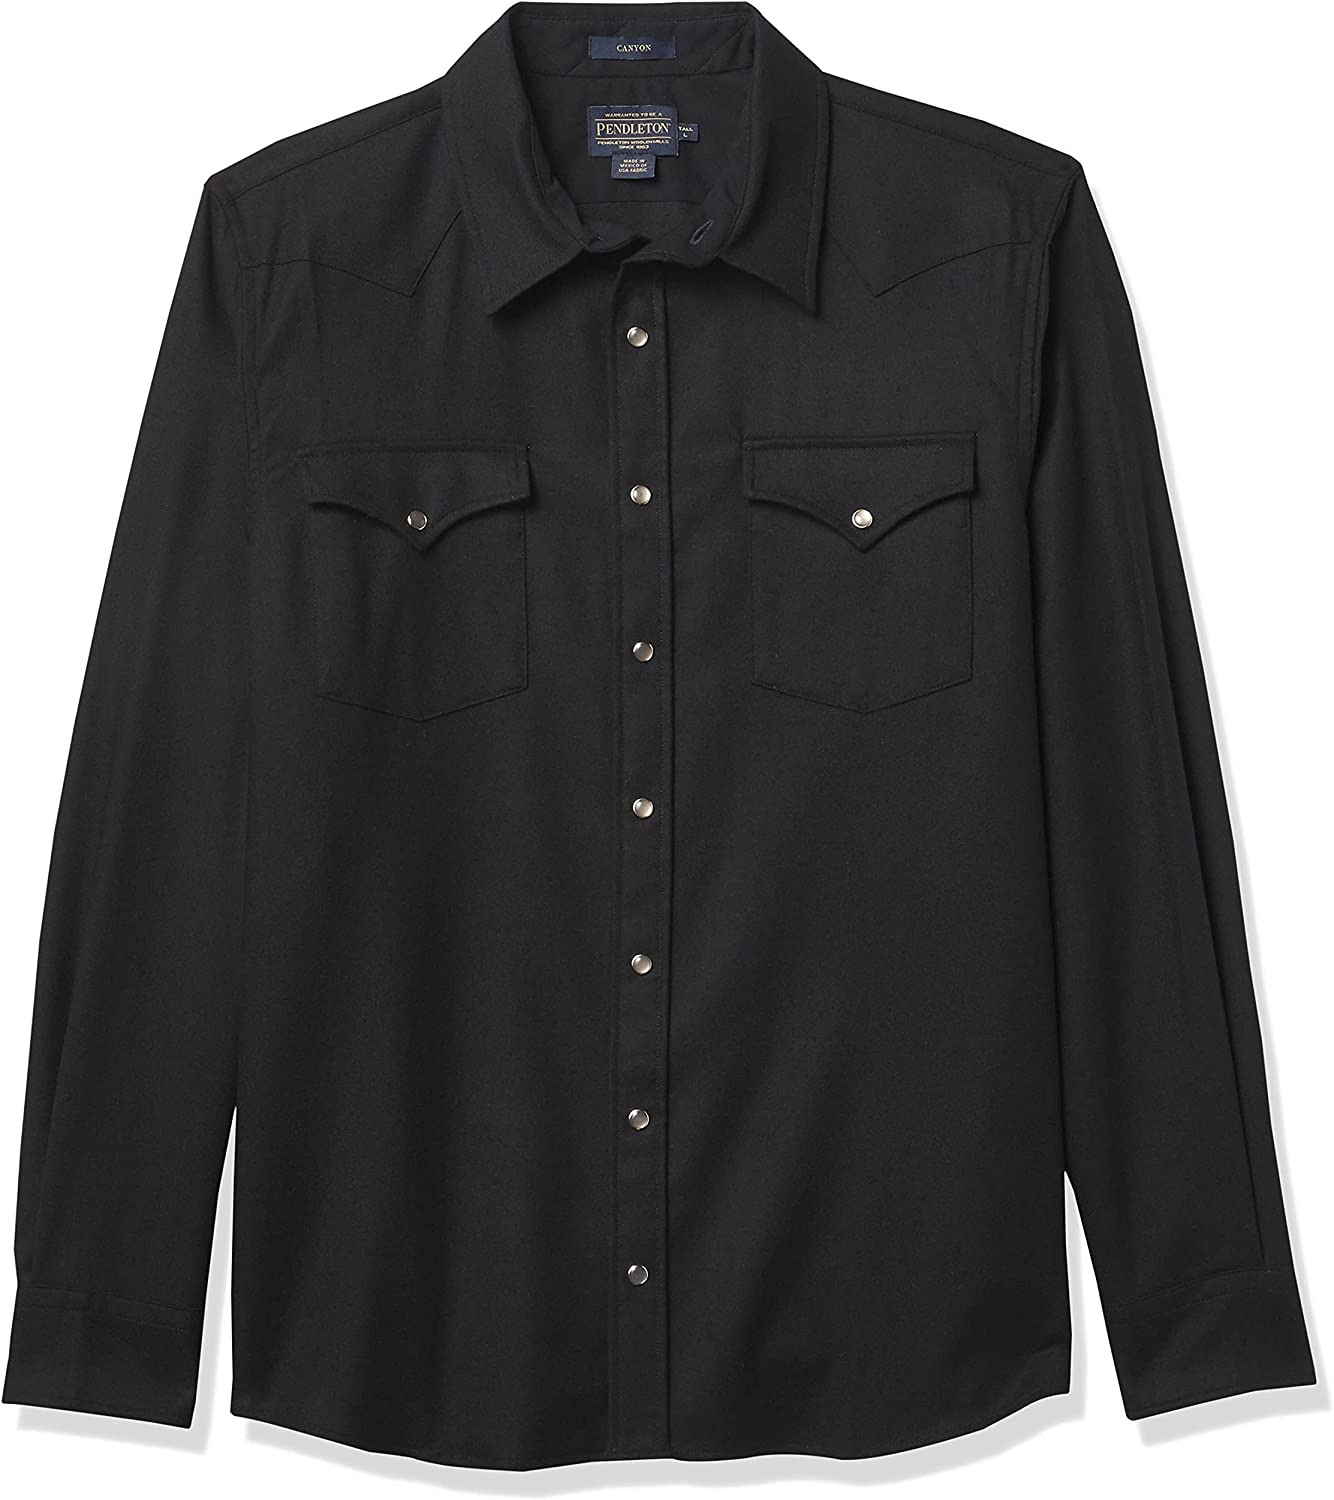 Pendleton Men's Tall Size Long Sleeve Snap Front Classic Fit Canyon Wool Shirt